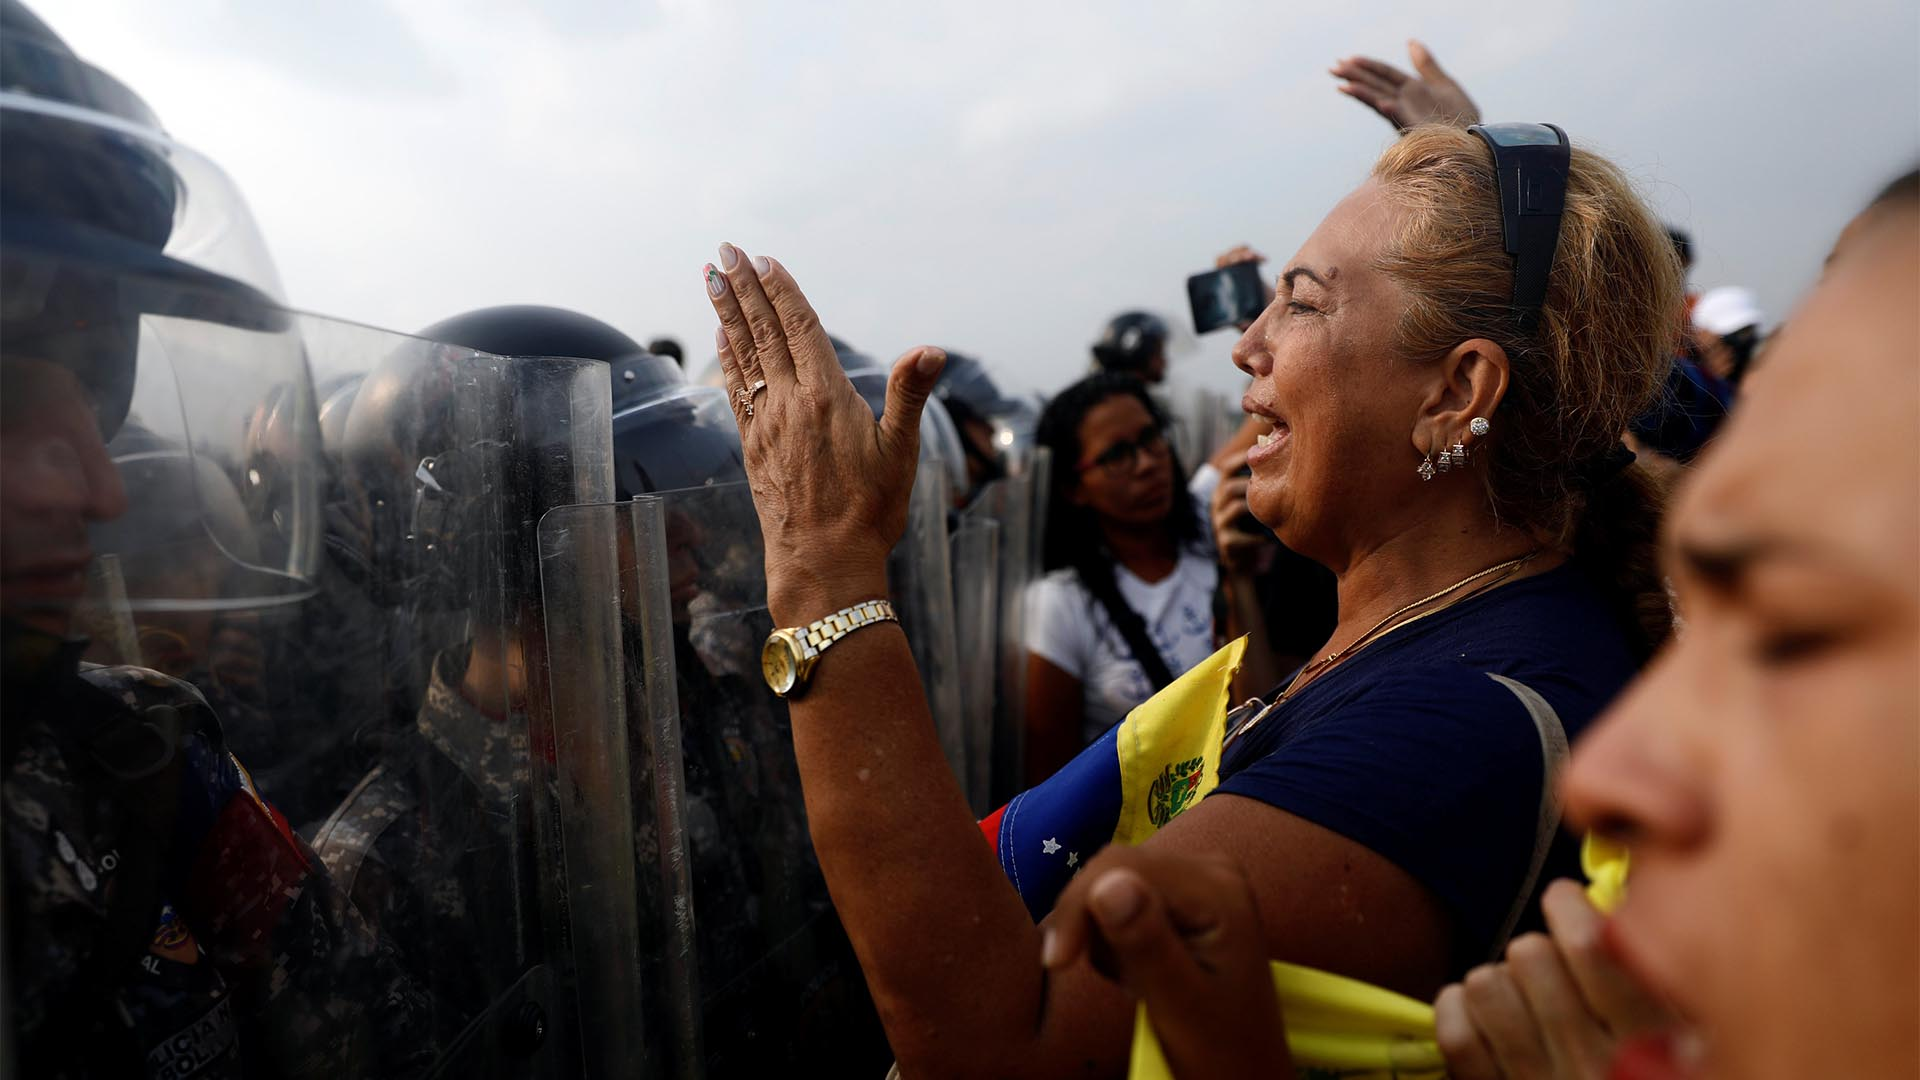 Venezuela's opposition supporters demand to cross the border line between Colombia and Venezuela at Simon Bolivar bridge as Venezuela's security forces stand in the border line blocking their way